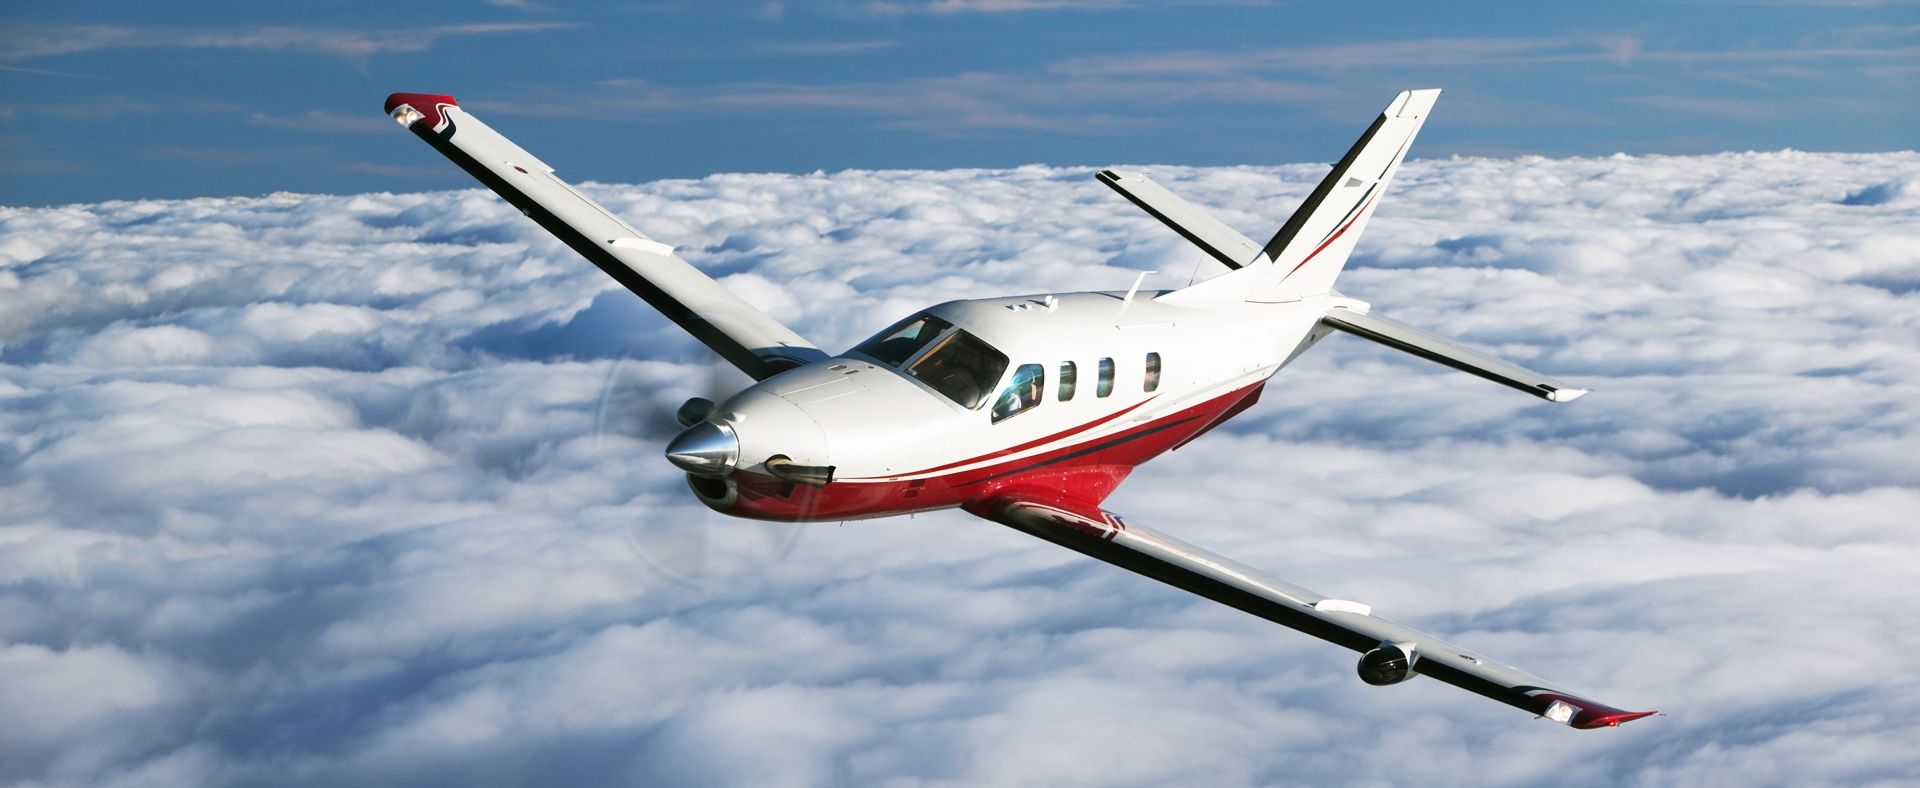 Home - RGV Aviation - Taking the hassle out of aircraft maintenance